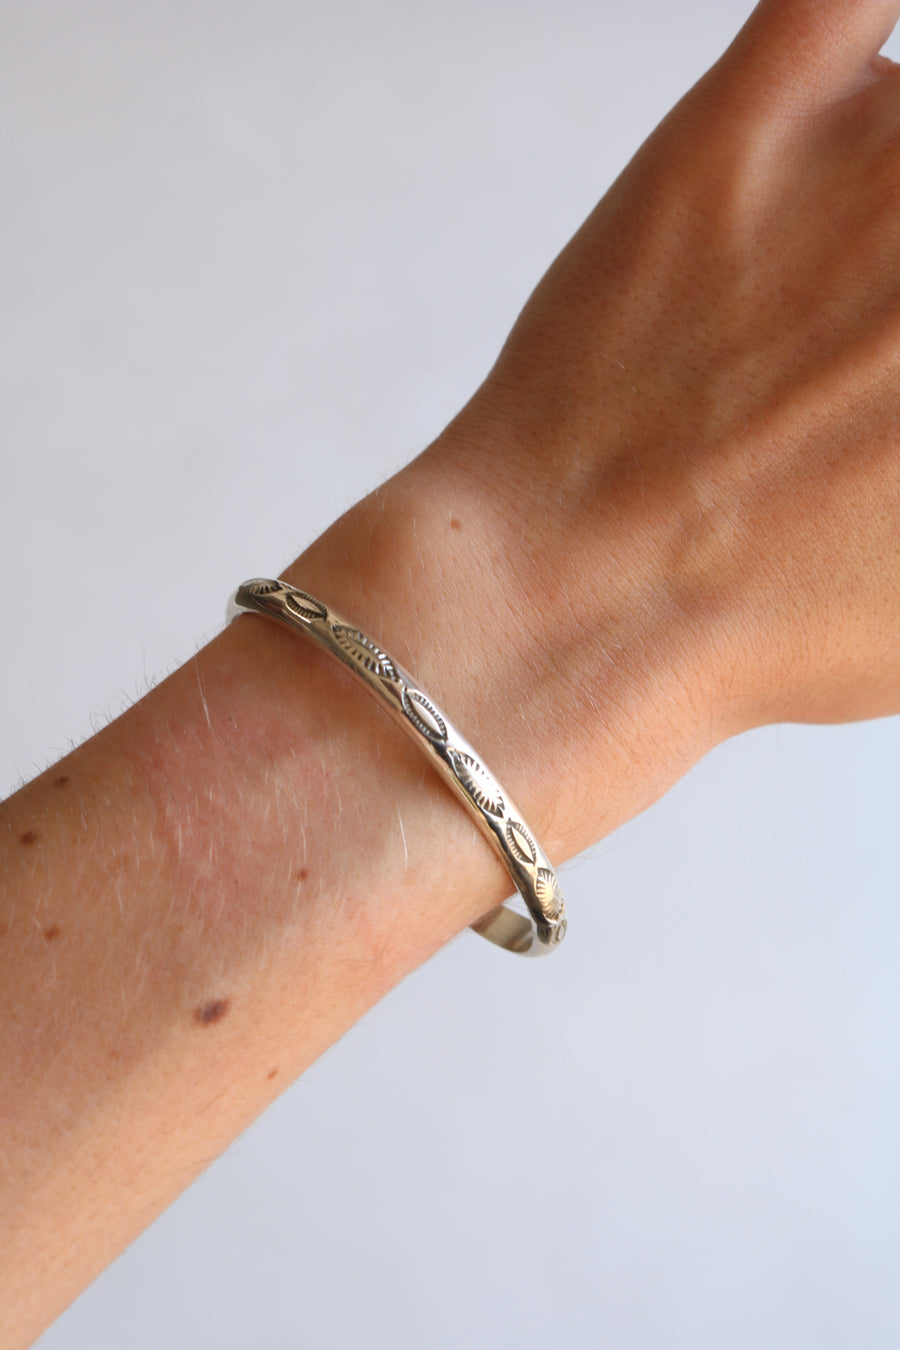 Bobby Becenti // Stamped Sterling Silver Bracelet